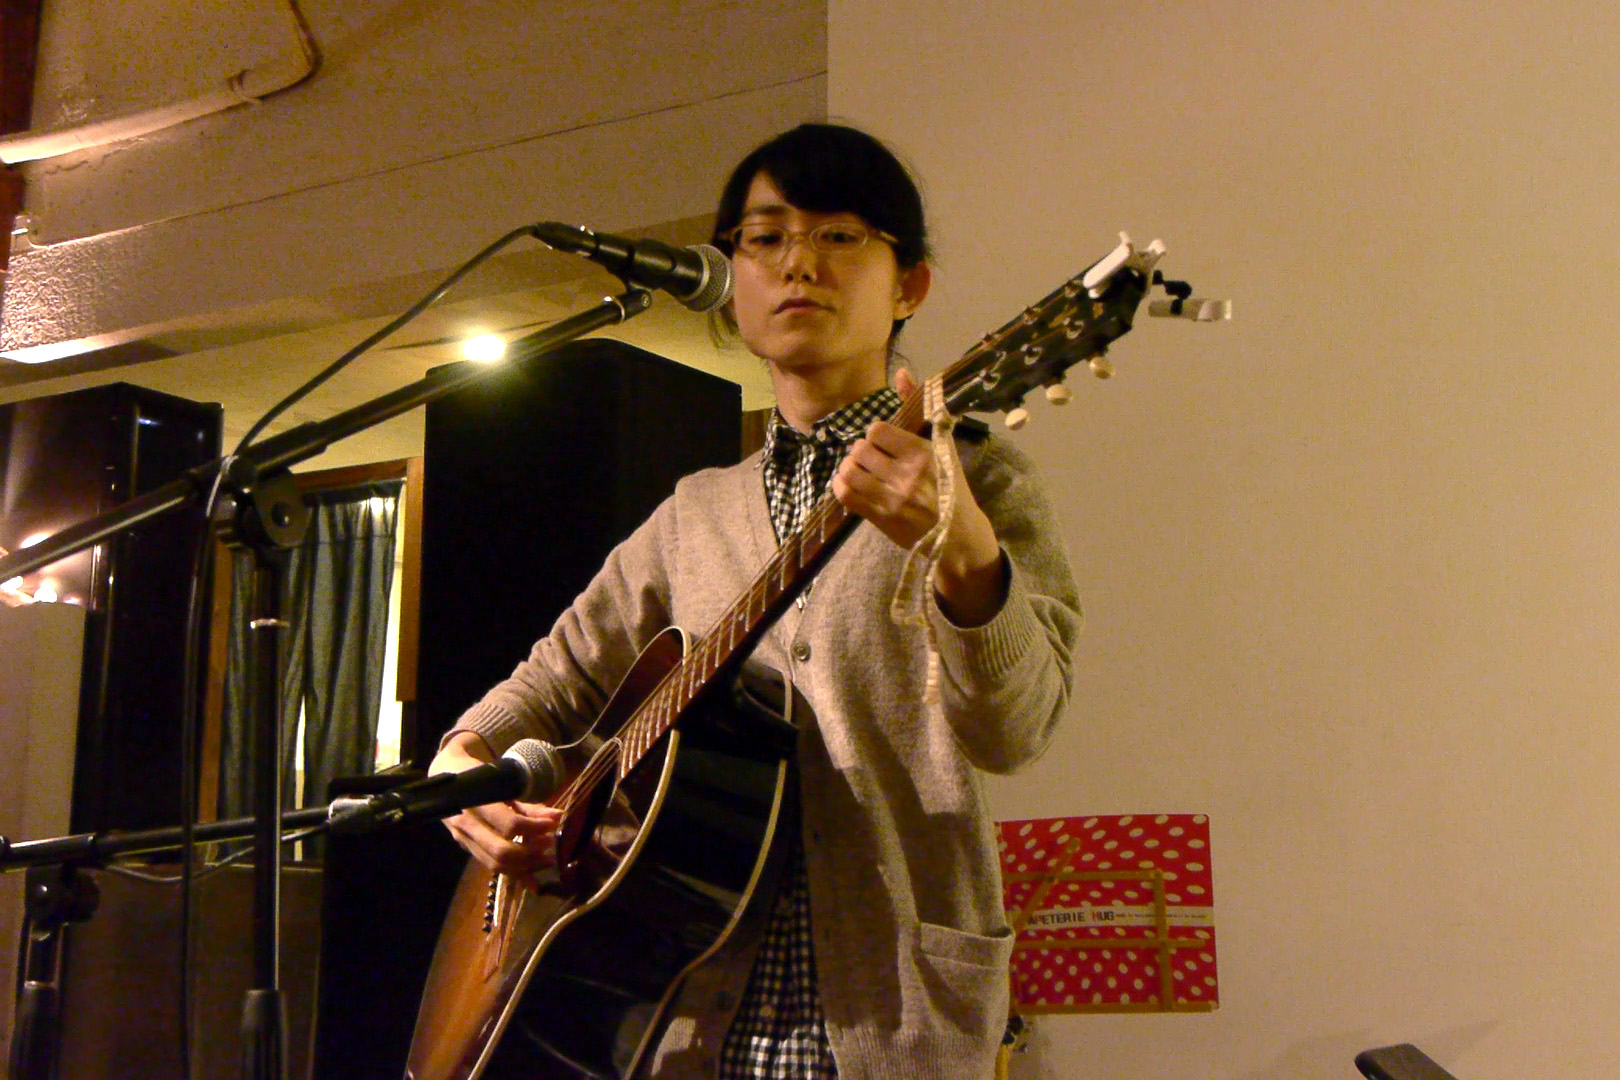 萬人音樂堂Presents レコ発ライブツアー in 沖縄 2012 OKINAWA HARMLESS @ 沖縄 Cafe & Dining Bar THREE_c0000587_19384198.jpg